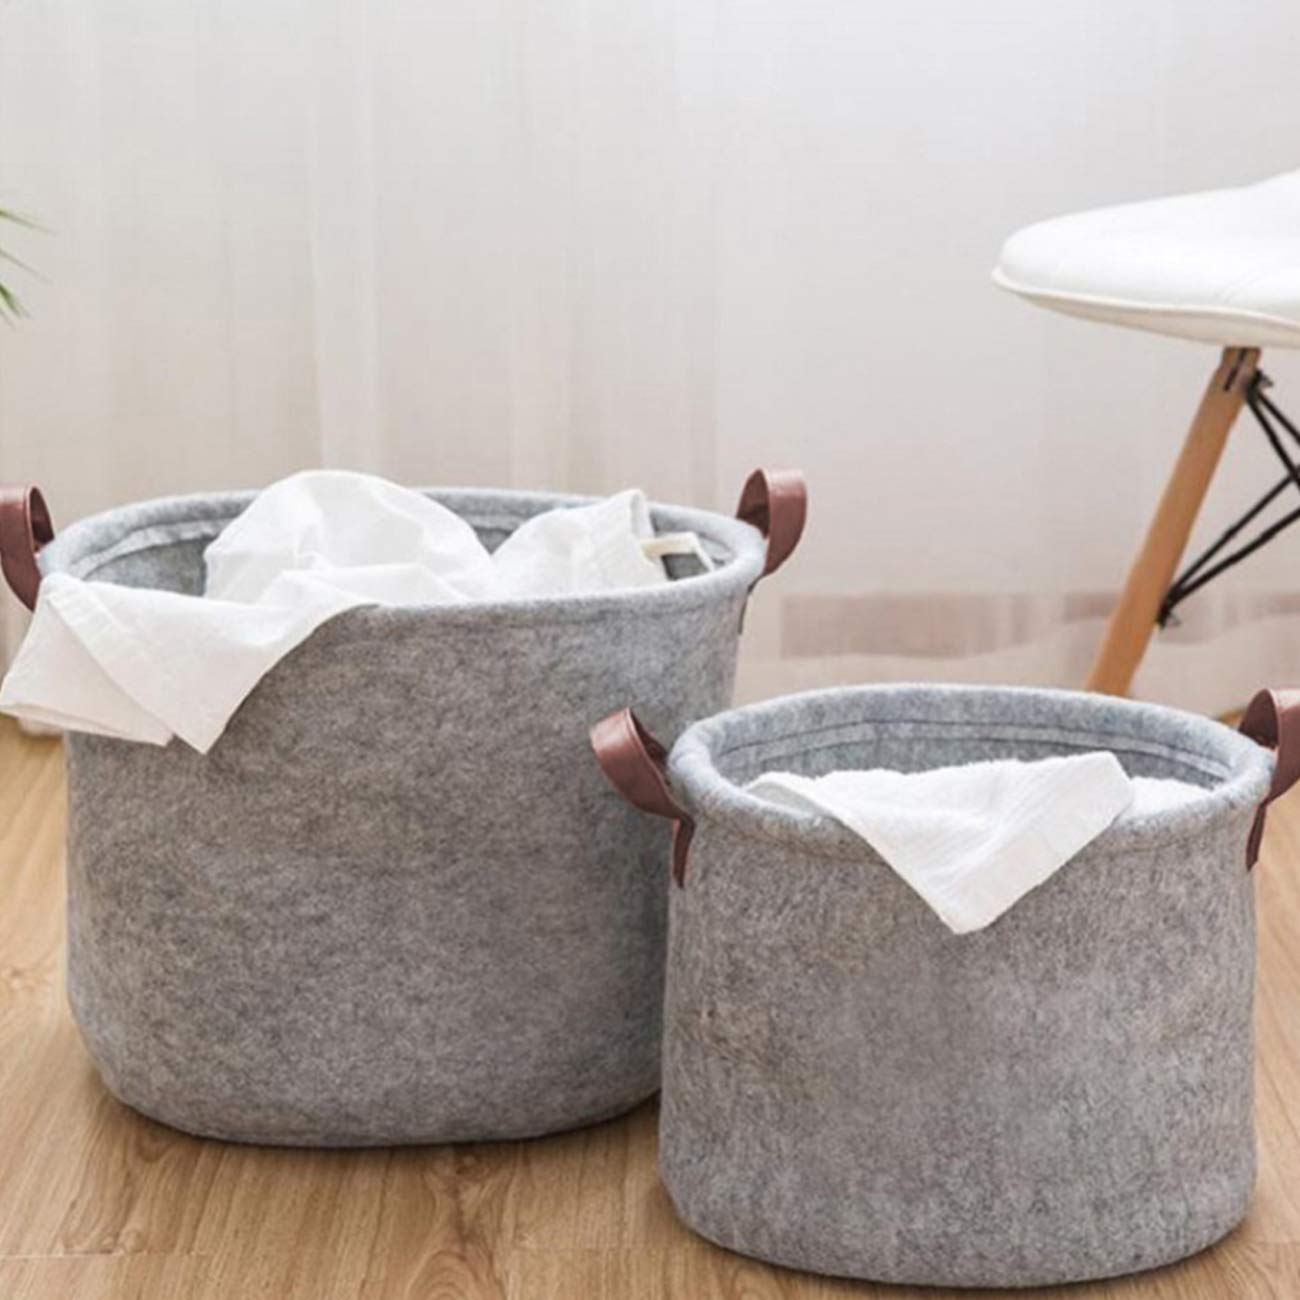 two felt storage baskets with handles and linens inside